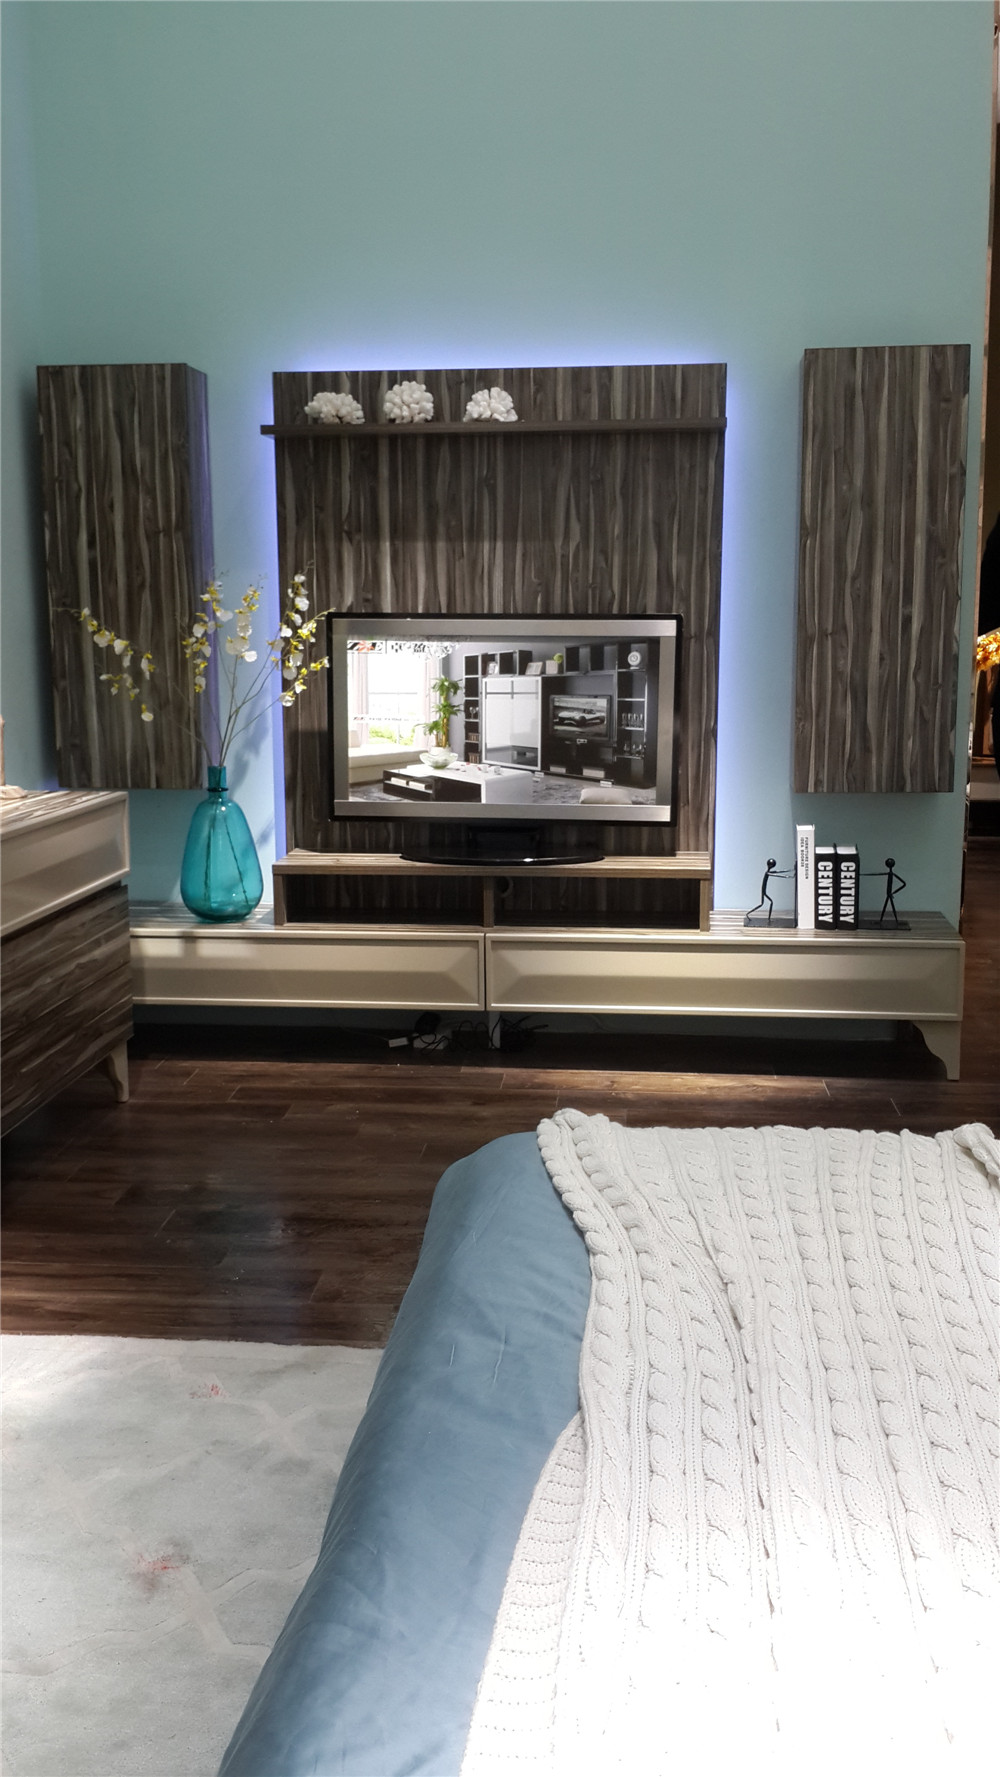 Room Showcase Designs Recommended Mdf Living: Wooden New Model Tv Cabinet With Showcase/living Room Led